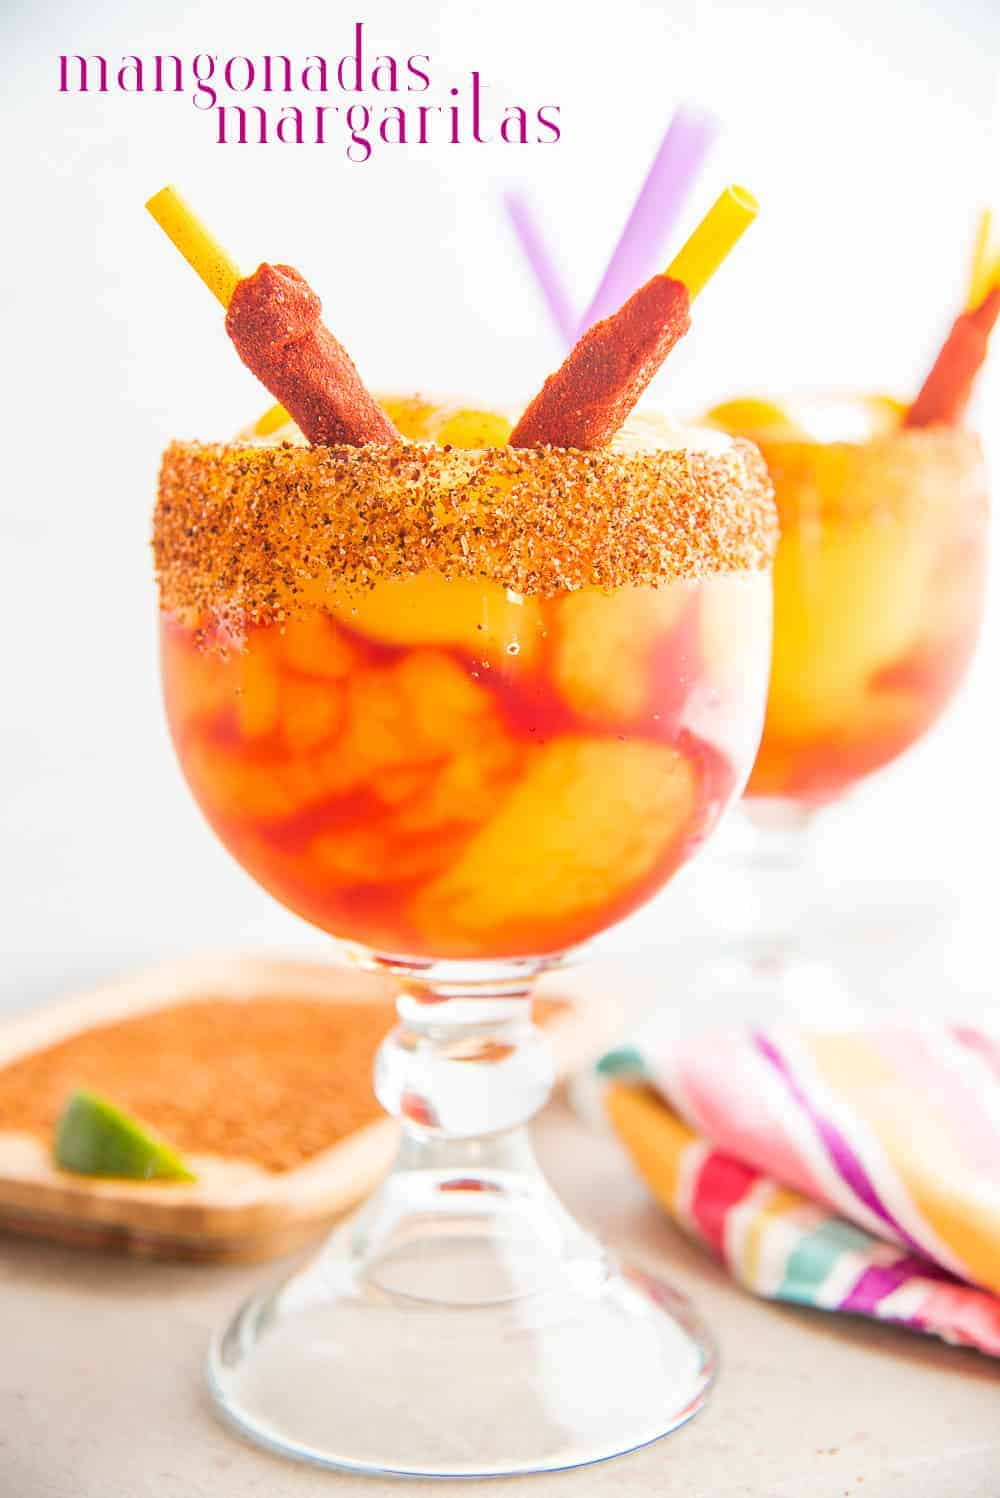 Mangonadas are a spiced and blended frozen margarita that's heavy on flavor, sweetly spicy and potent. Liven up your Cinco de Mayo or fiestas with a few rounds. #mangonada #mangomargarita #margarita #chamoy #tajin #cincodemayo #cocktails #drinks #libations #mexicancocktails #cocktailparty #mangonadasmargarita #virginrecipe #tequilablanco #casamigostequila #tequiladrinks #tequilacocktail #libations #mixology #SanAntoniofavorites #frozenmargarita #blendercocktails via @ediblesense